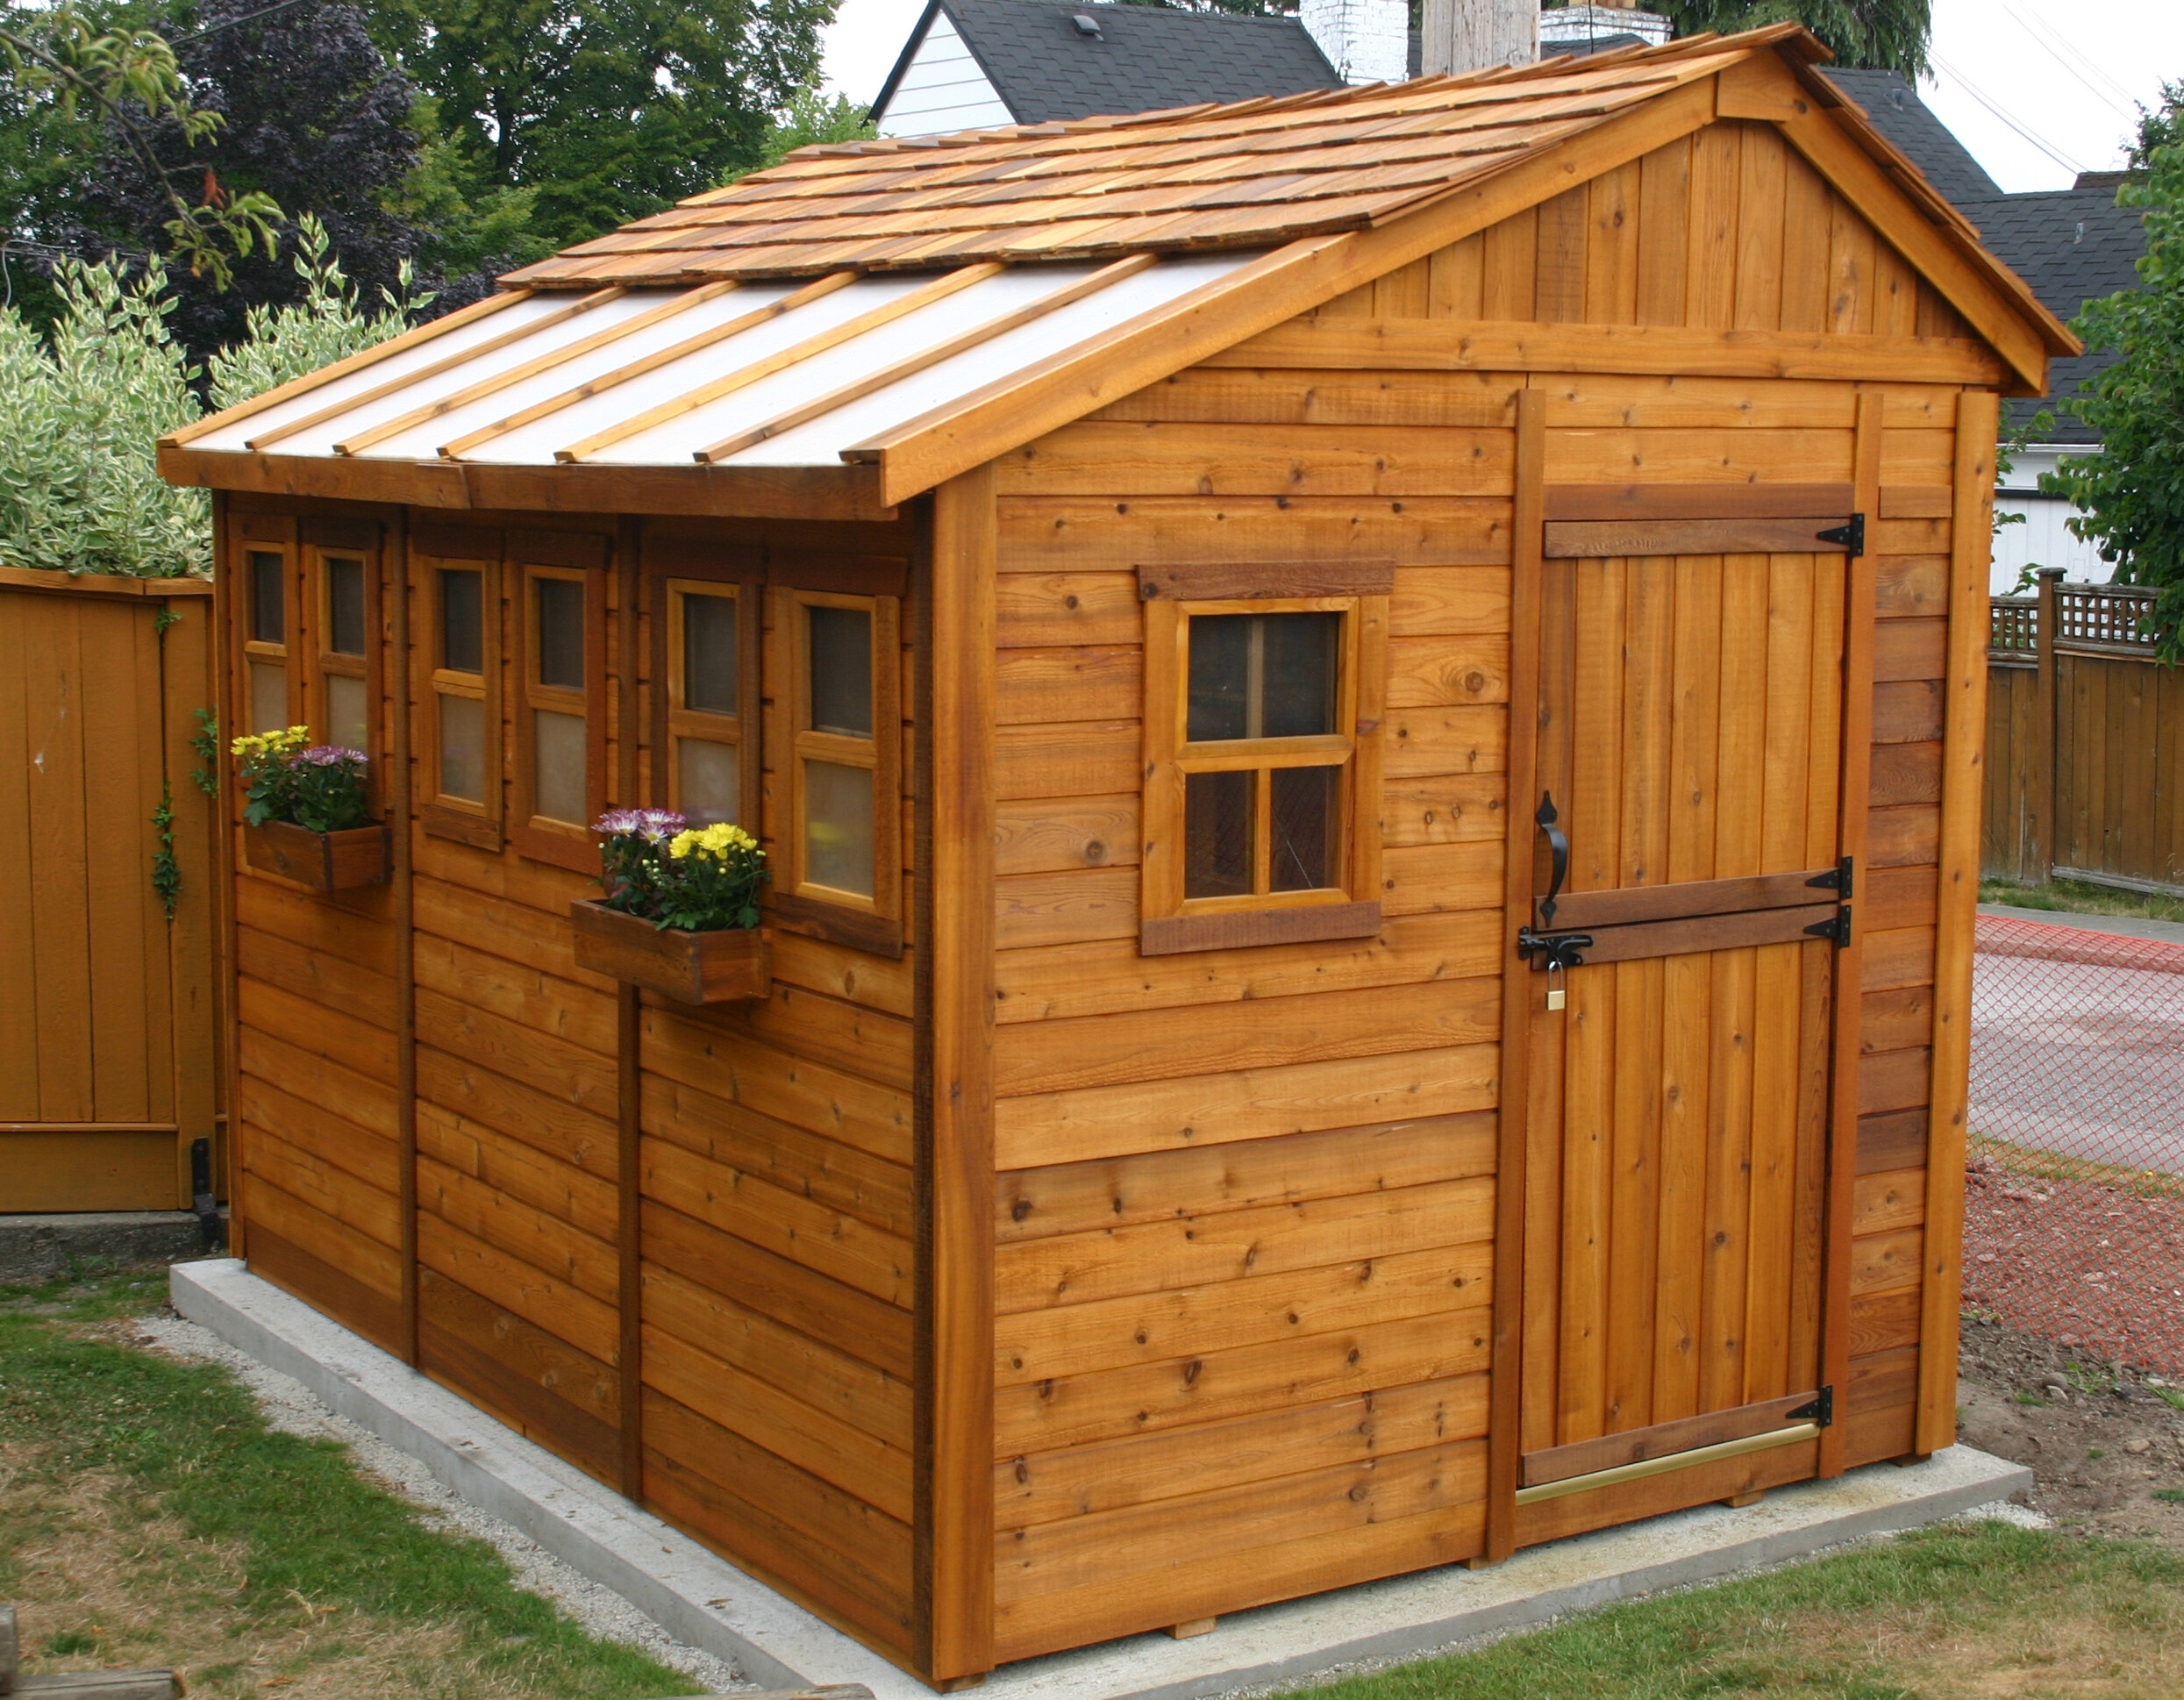 Sunshed 9 ft. W x 9 ft. D Solid Wood Storage Shed